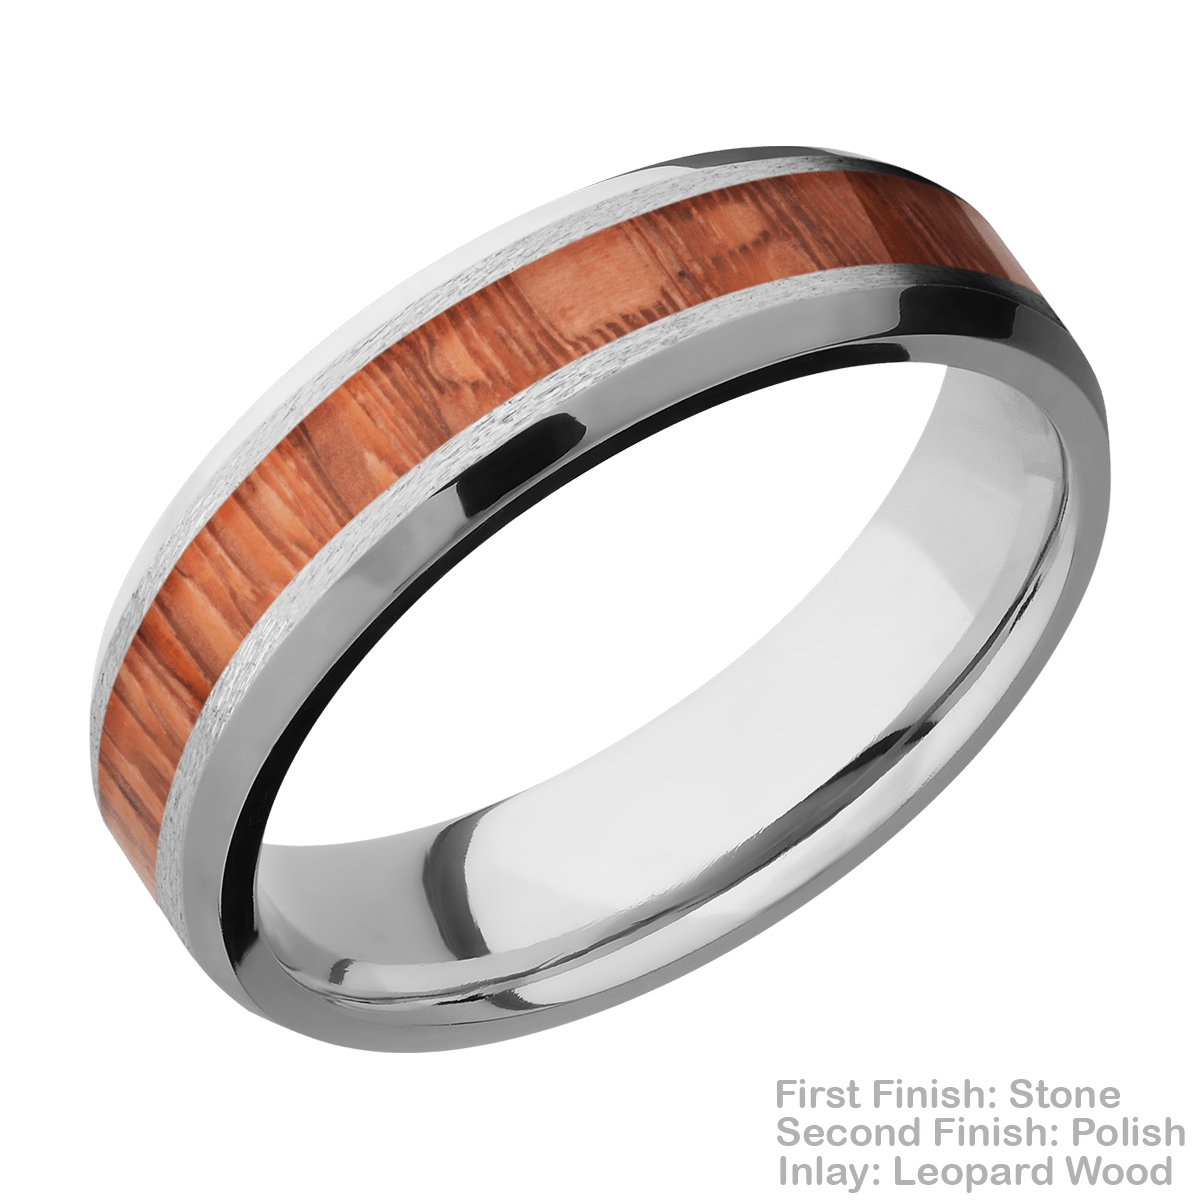 Lashbrook CC6B13(NS)/HARDWOOD Cobalt Chrome Wedding Ring or Band Alternative View 4